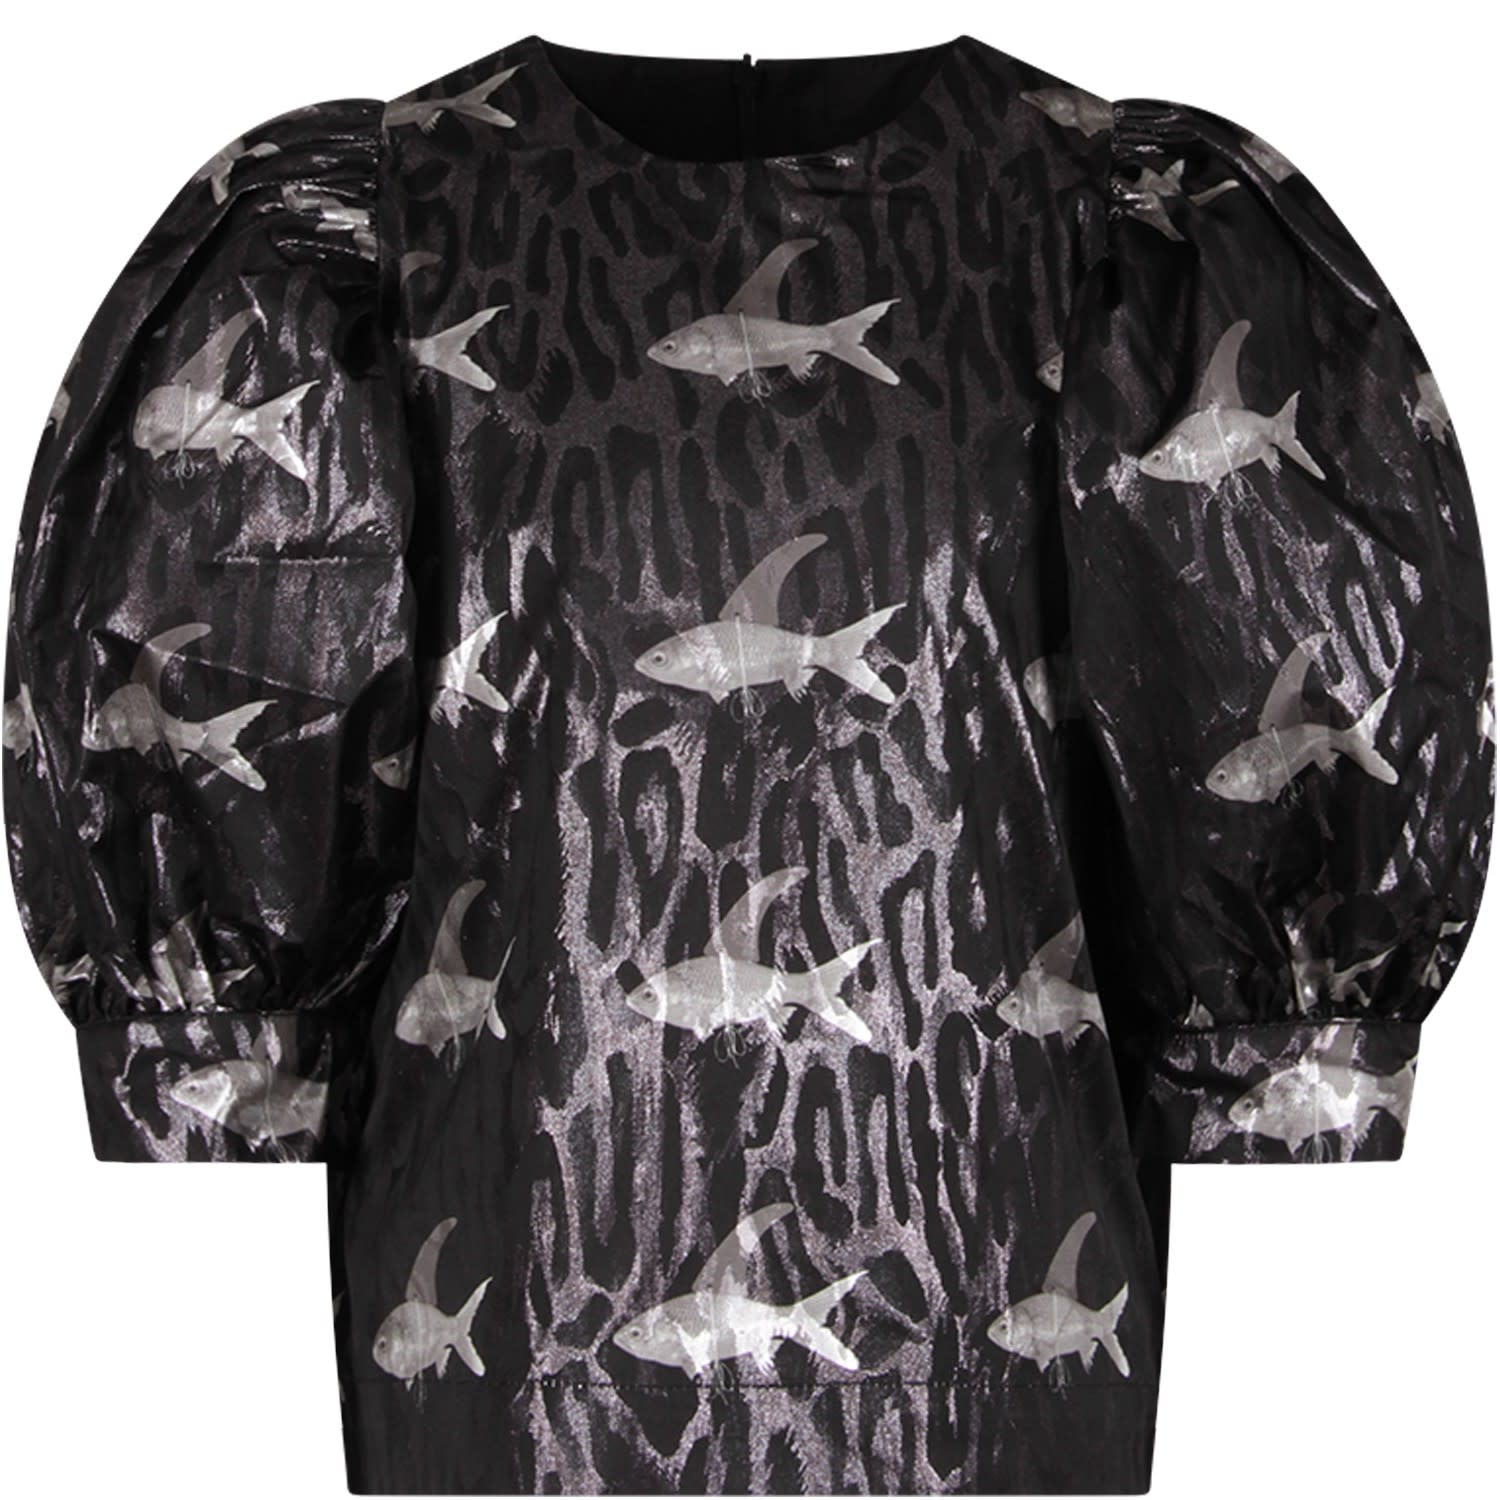 Black Blouse For Girl With Colorful Fishes